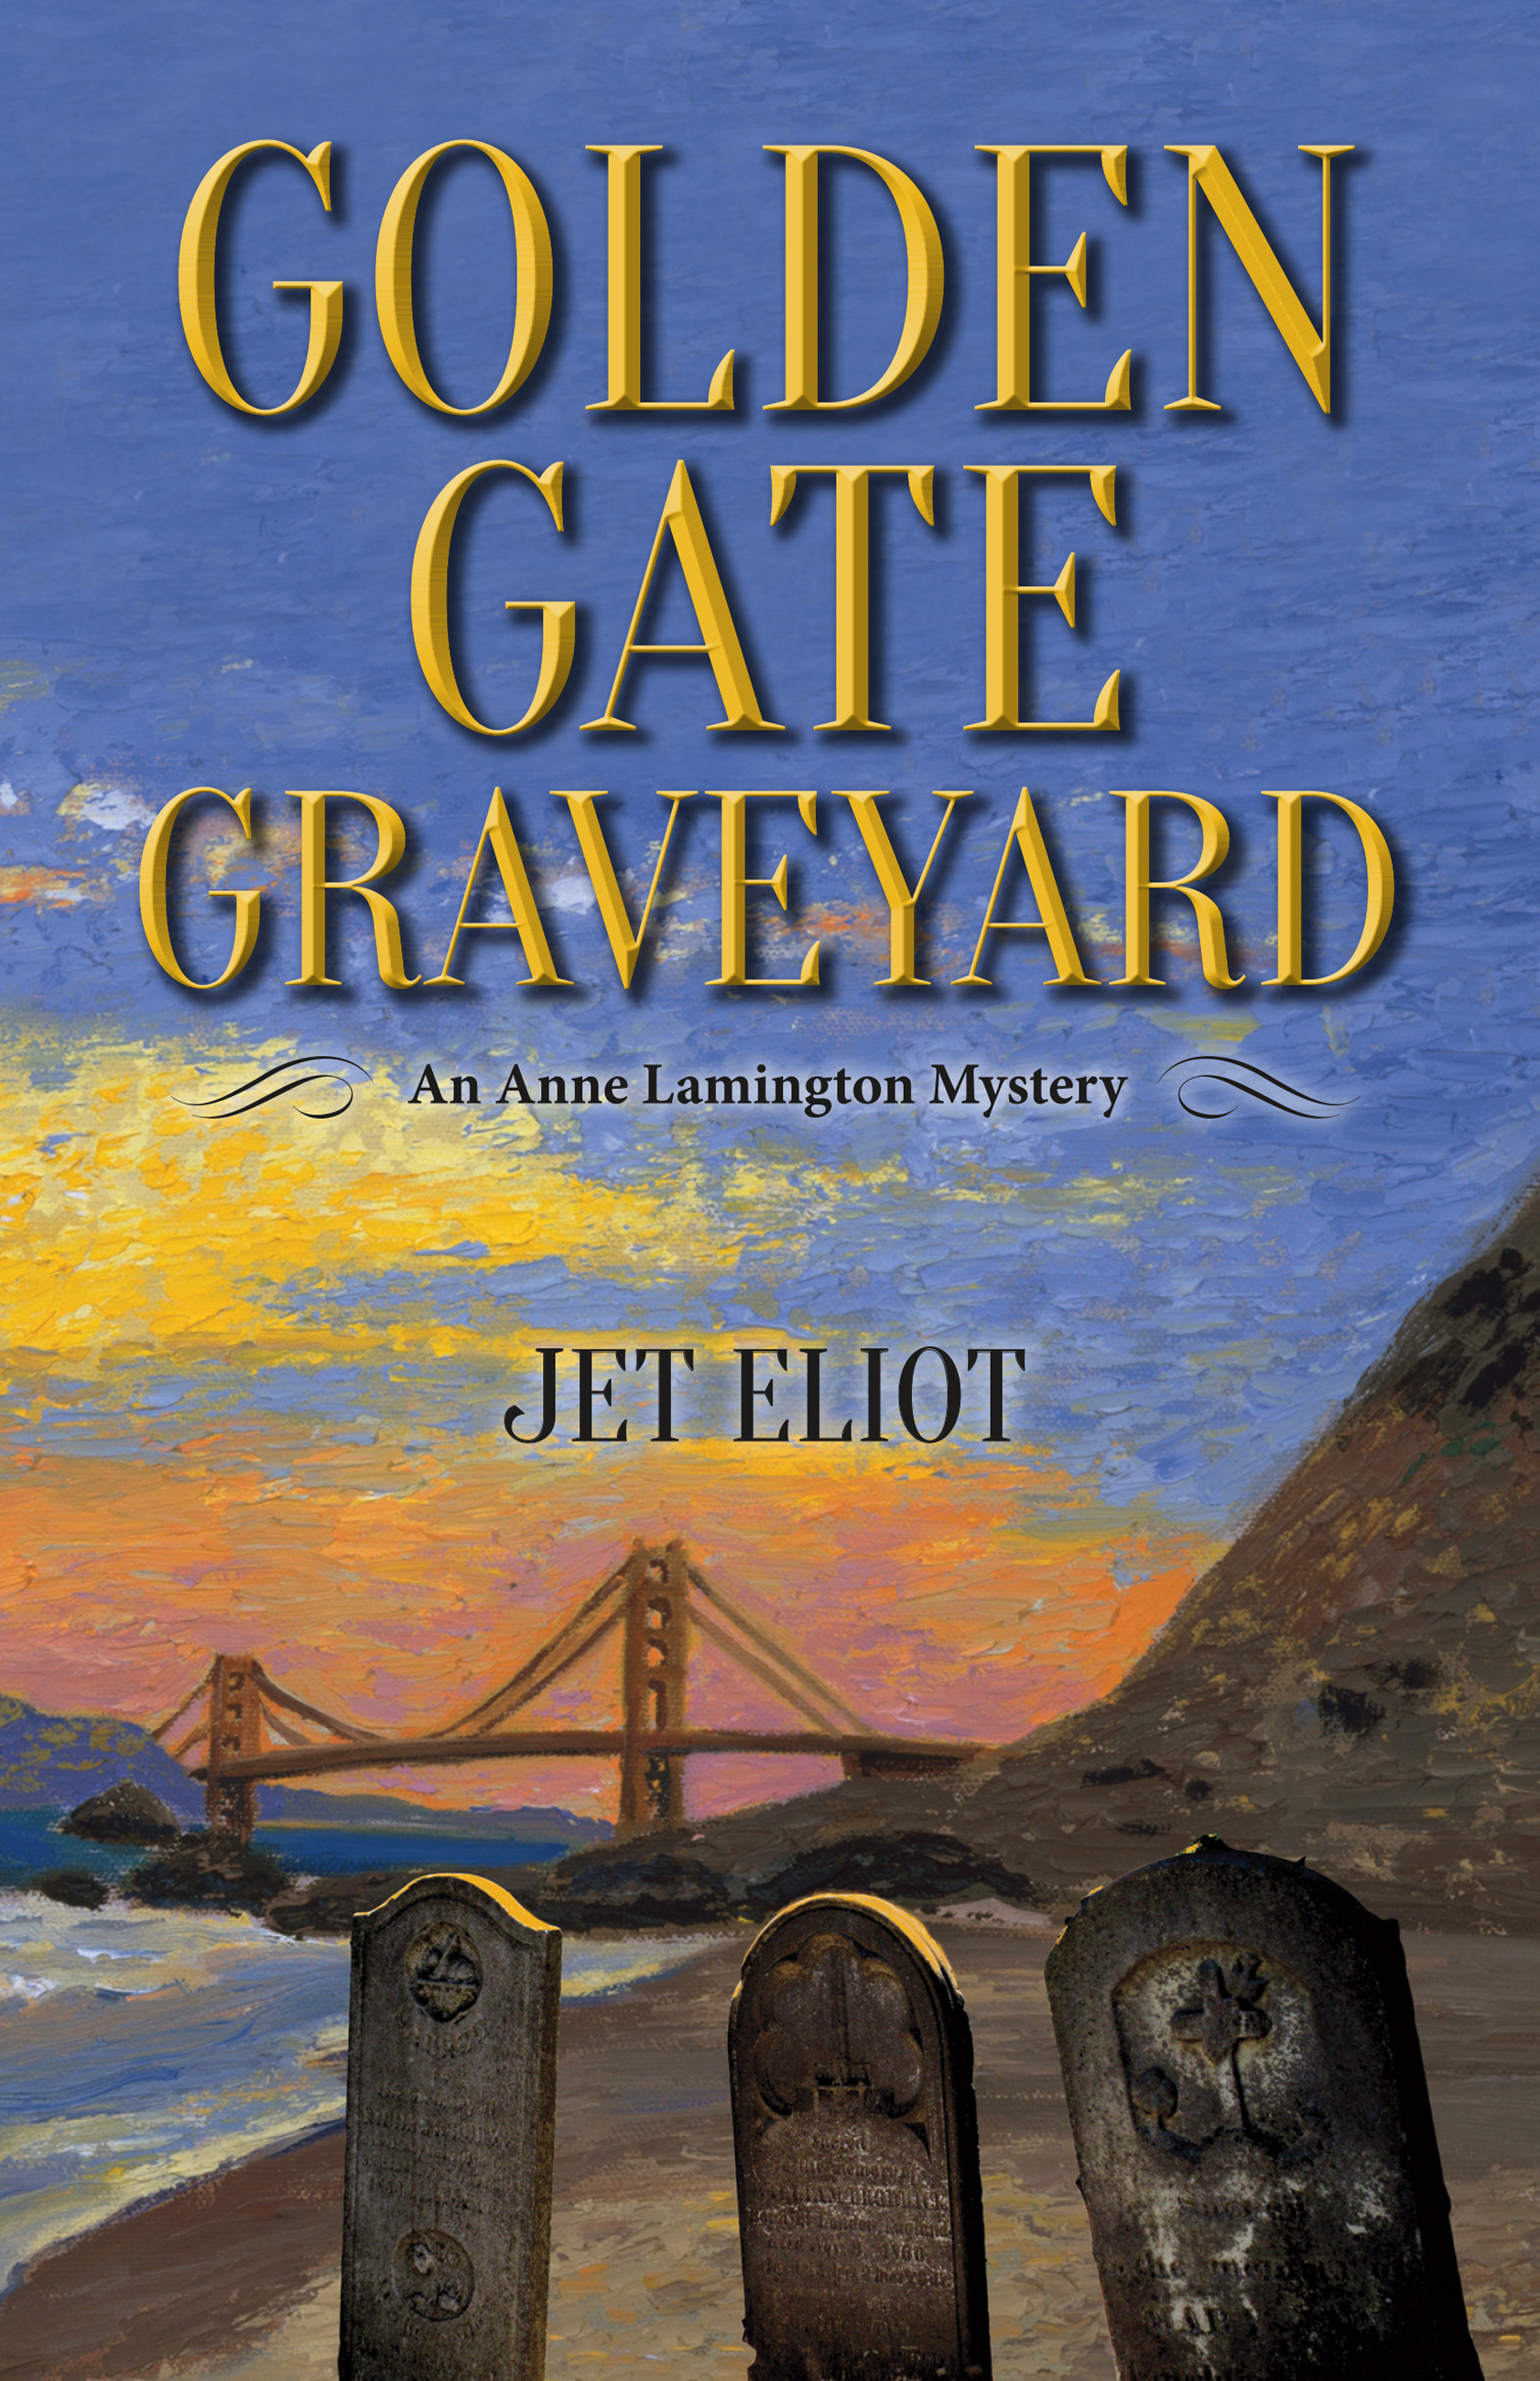 Golden Gate Graveyard